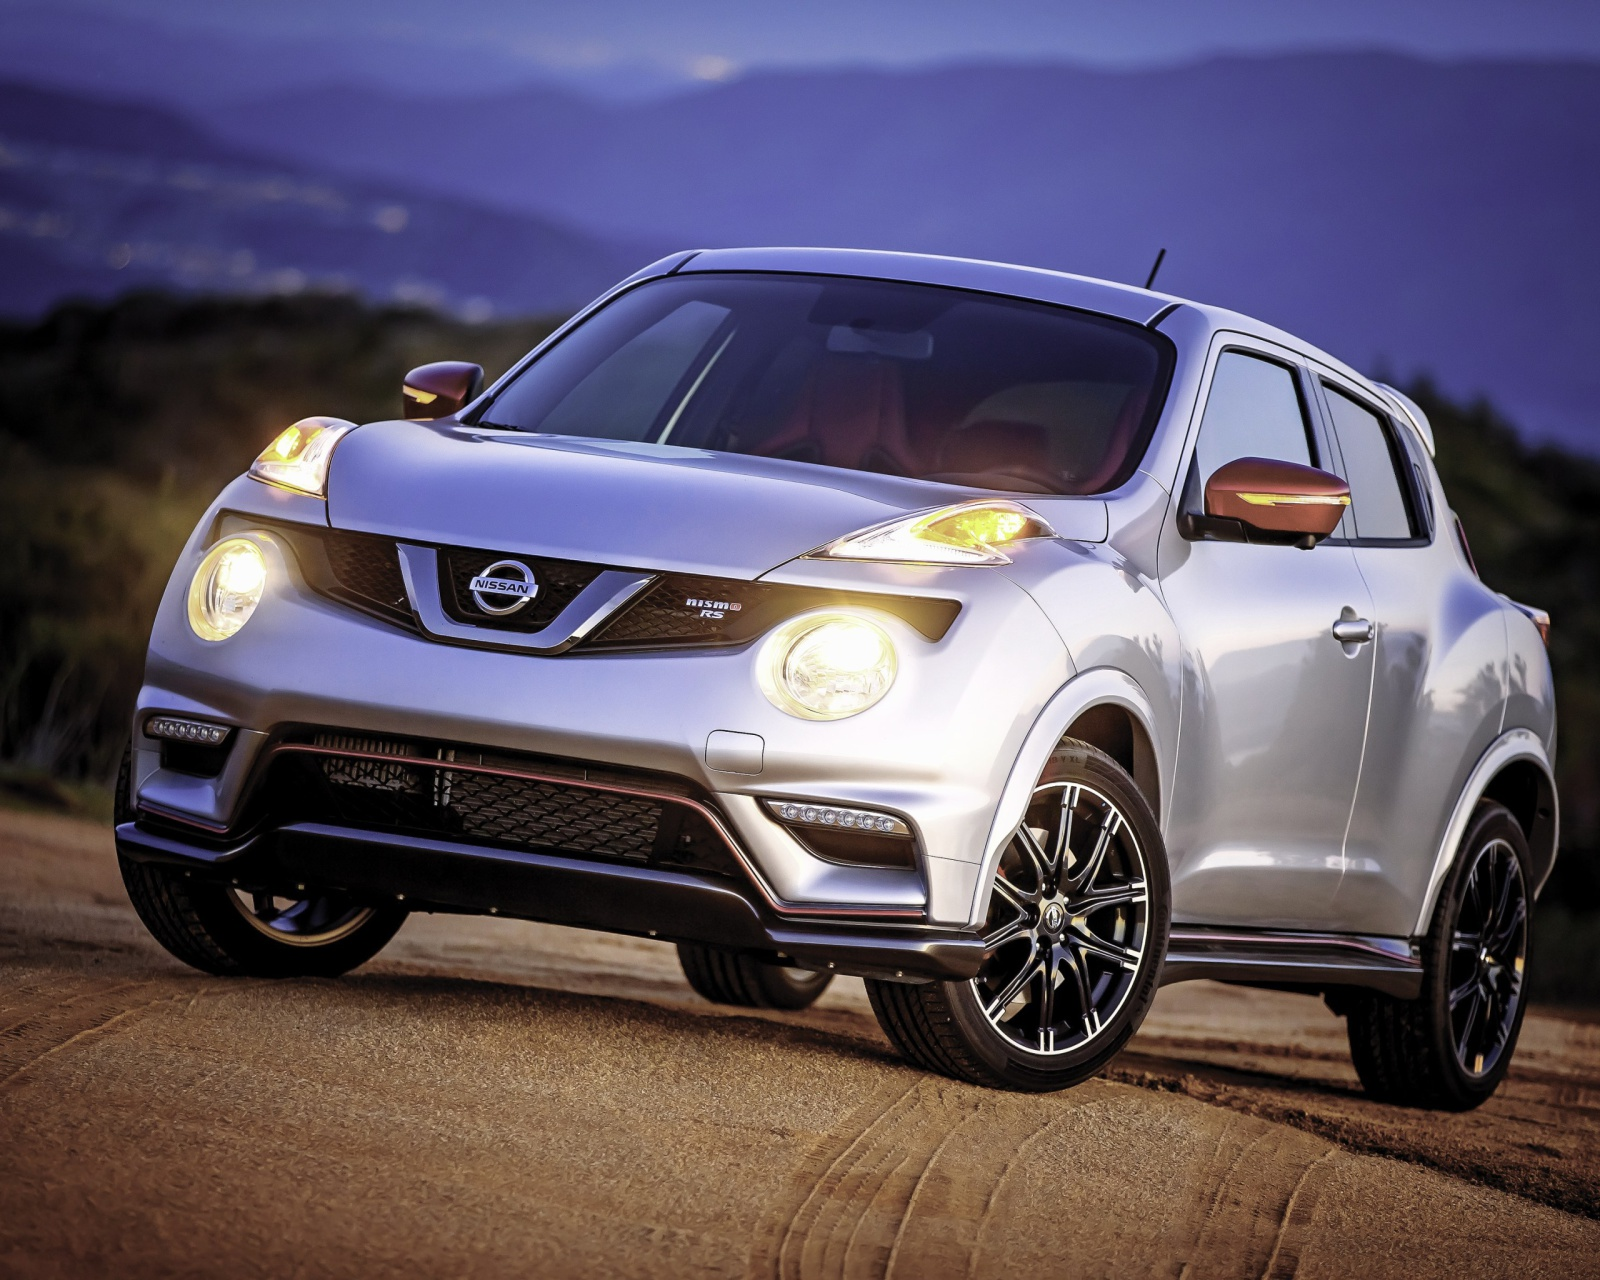 Nissan Juke Nismo RS screenshot #1 1600x1280